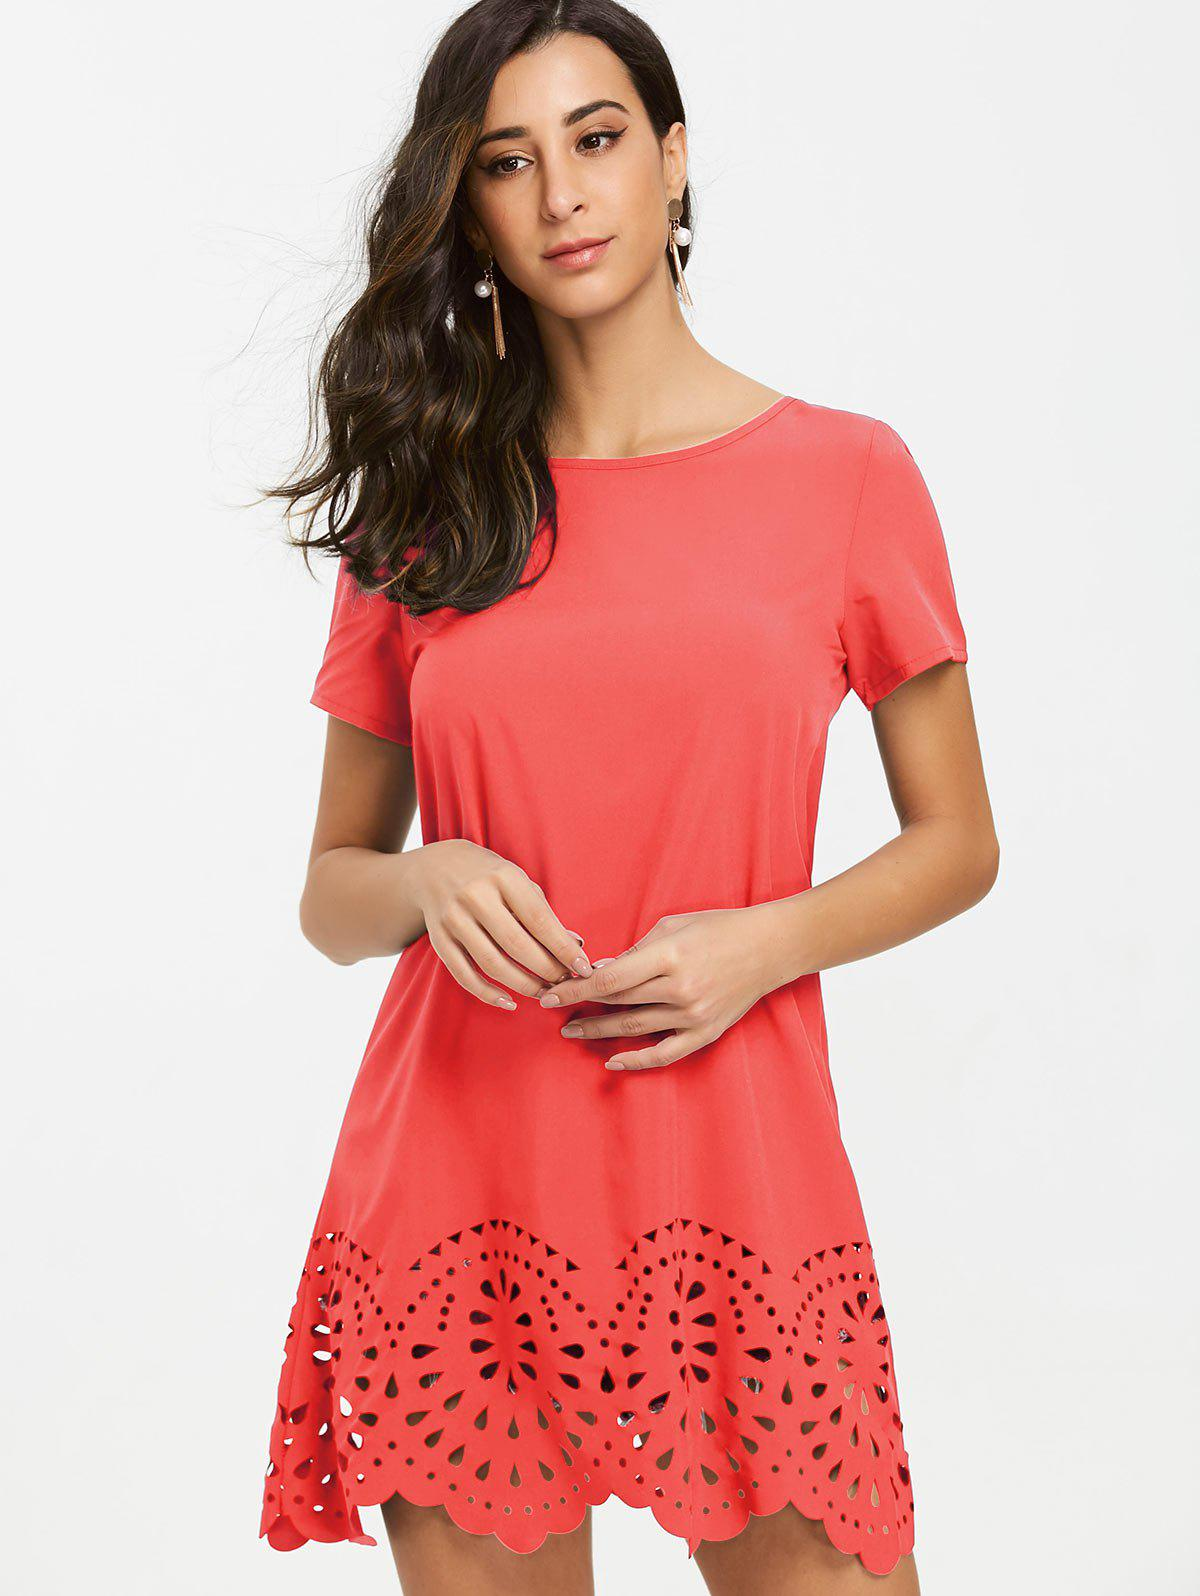 Short Sleeve Hollow Out Hemline Tee Dress - WATERMELON RED M